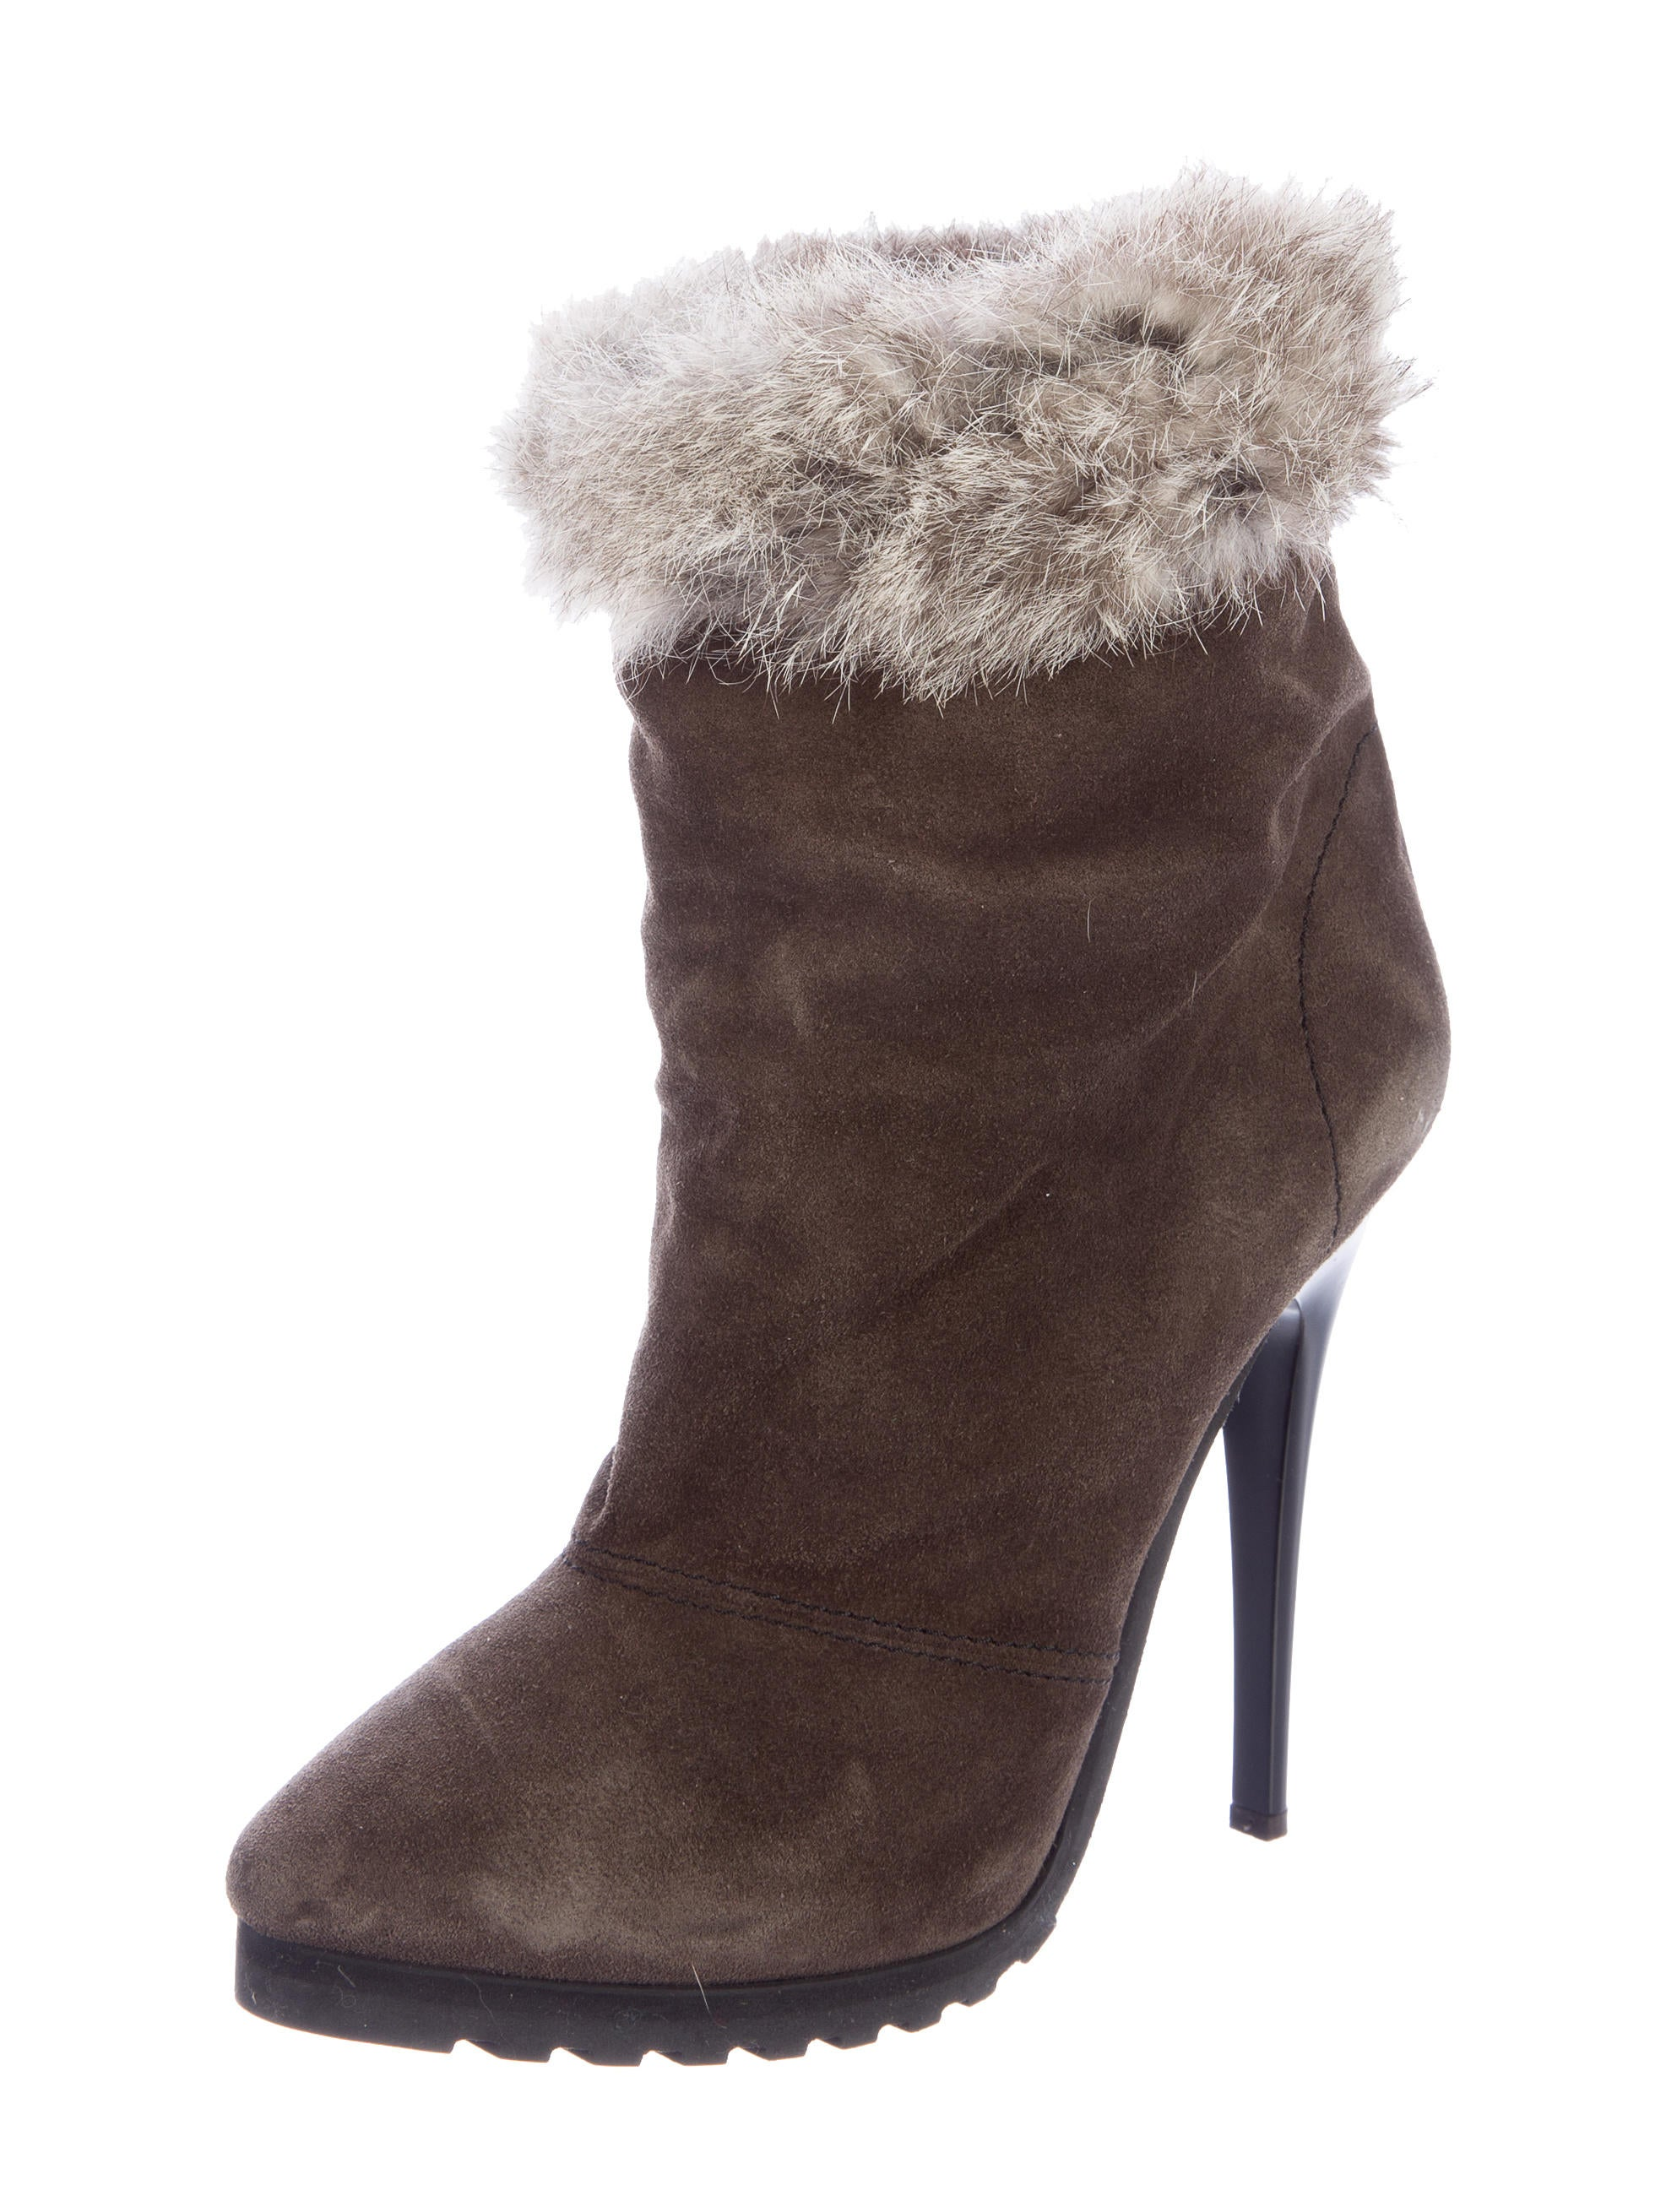 Find great deals on eBay for fur ankle boots. Shop with confidence.